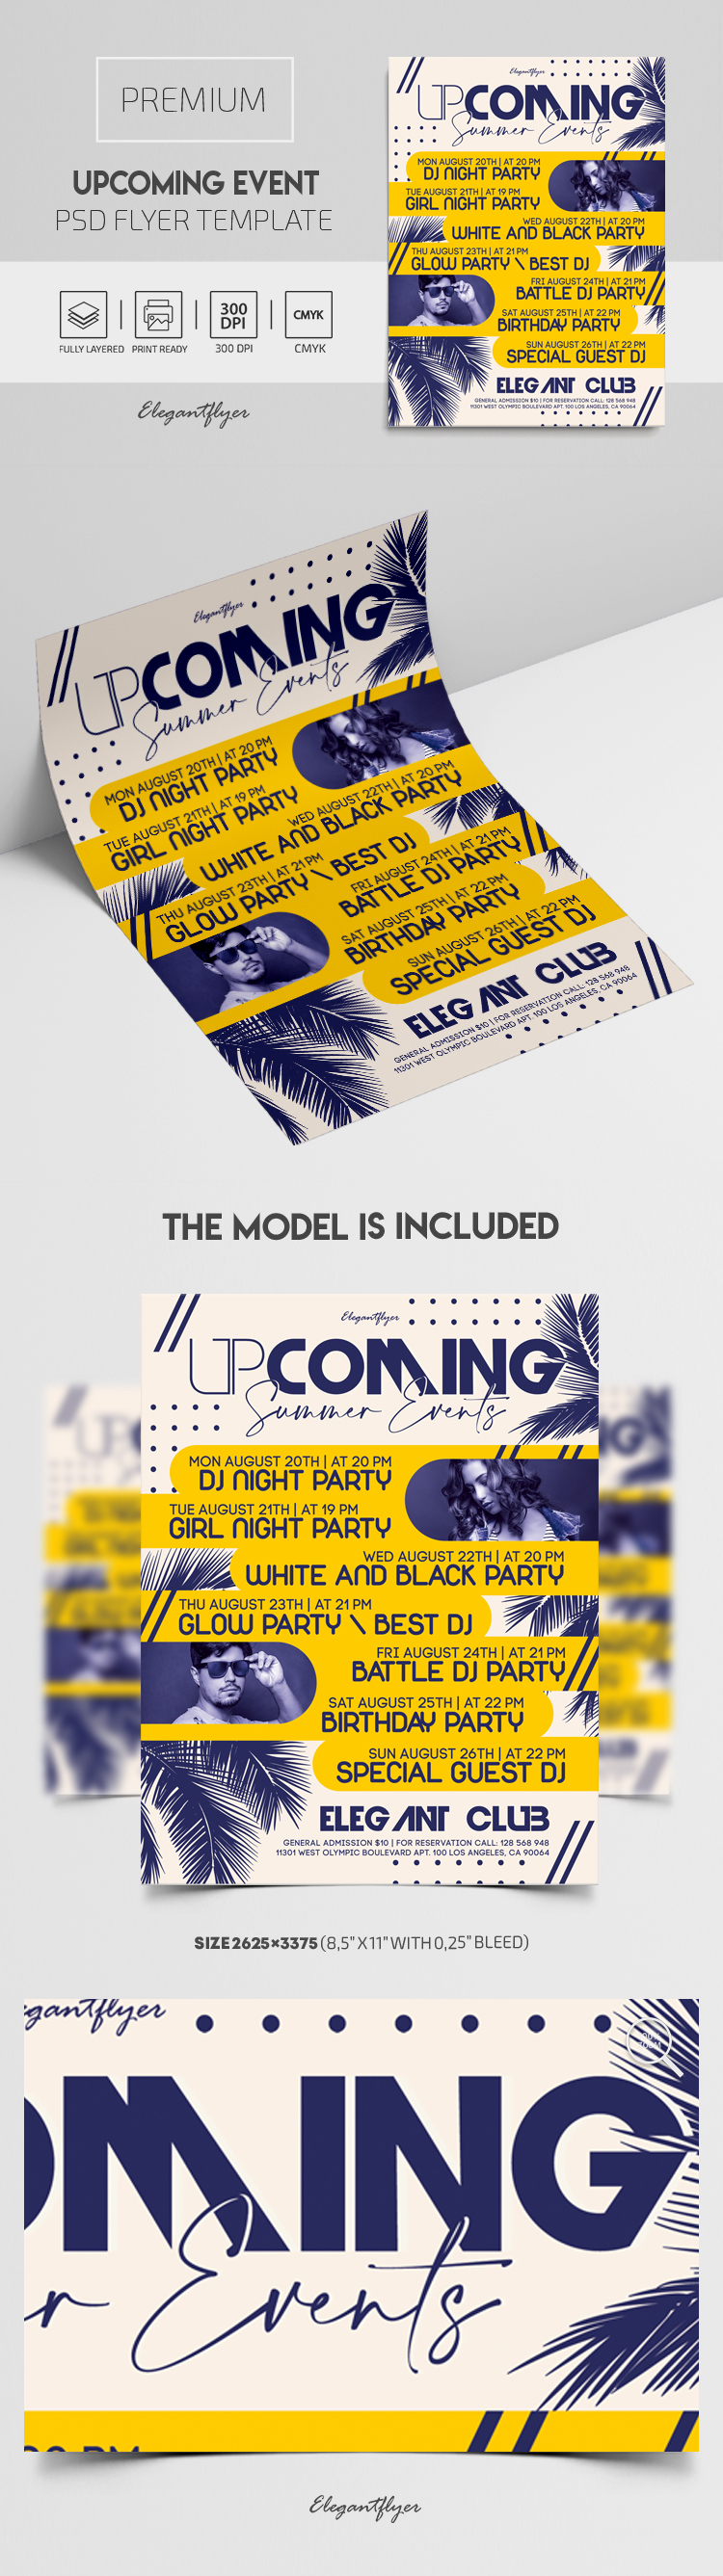 Upcoming Event – Premium PSD Flyer Template